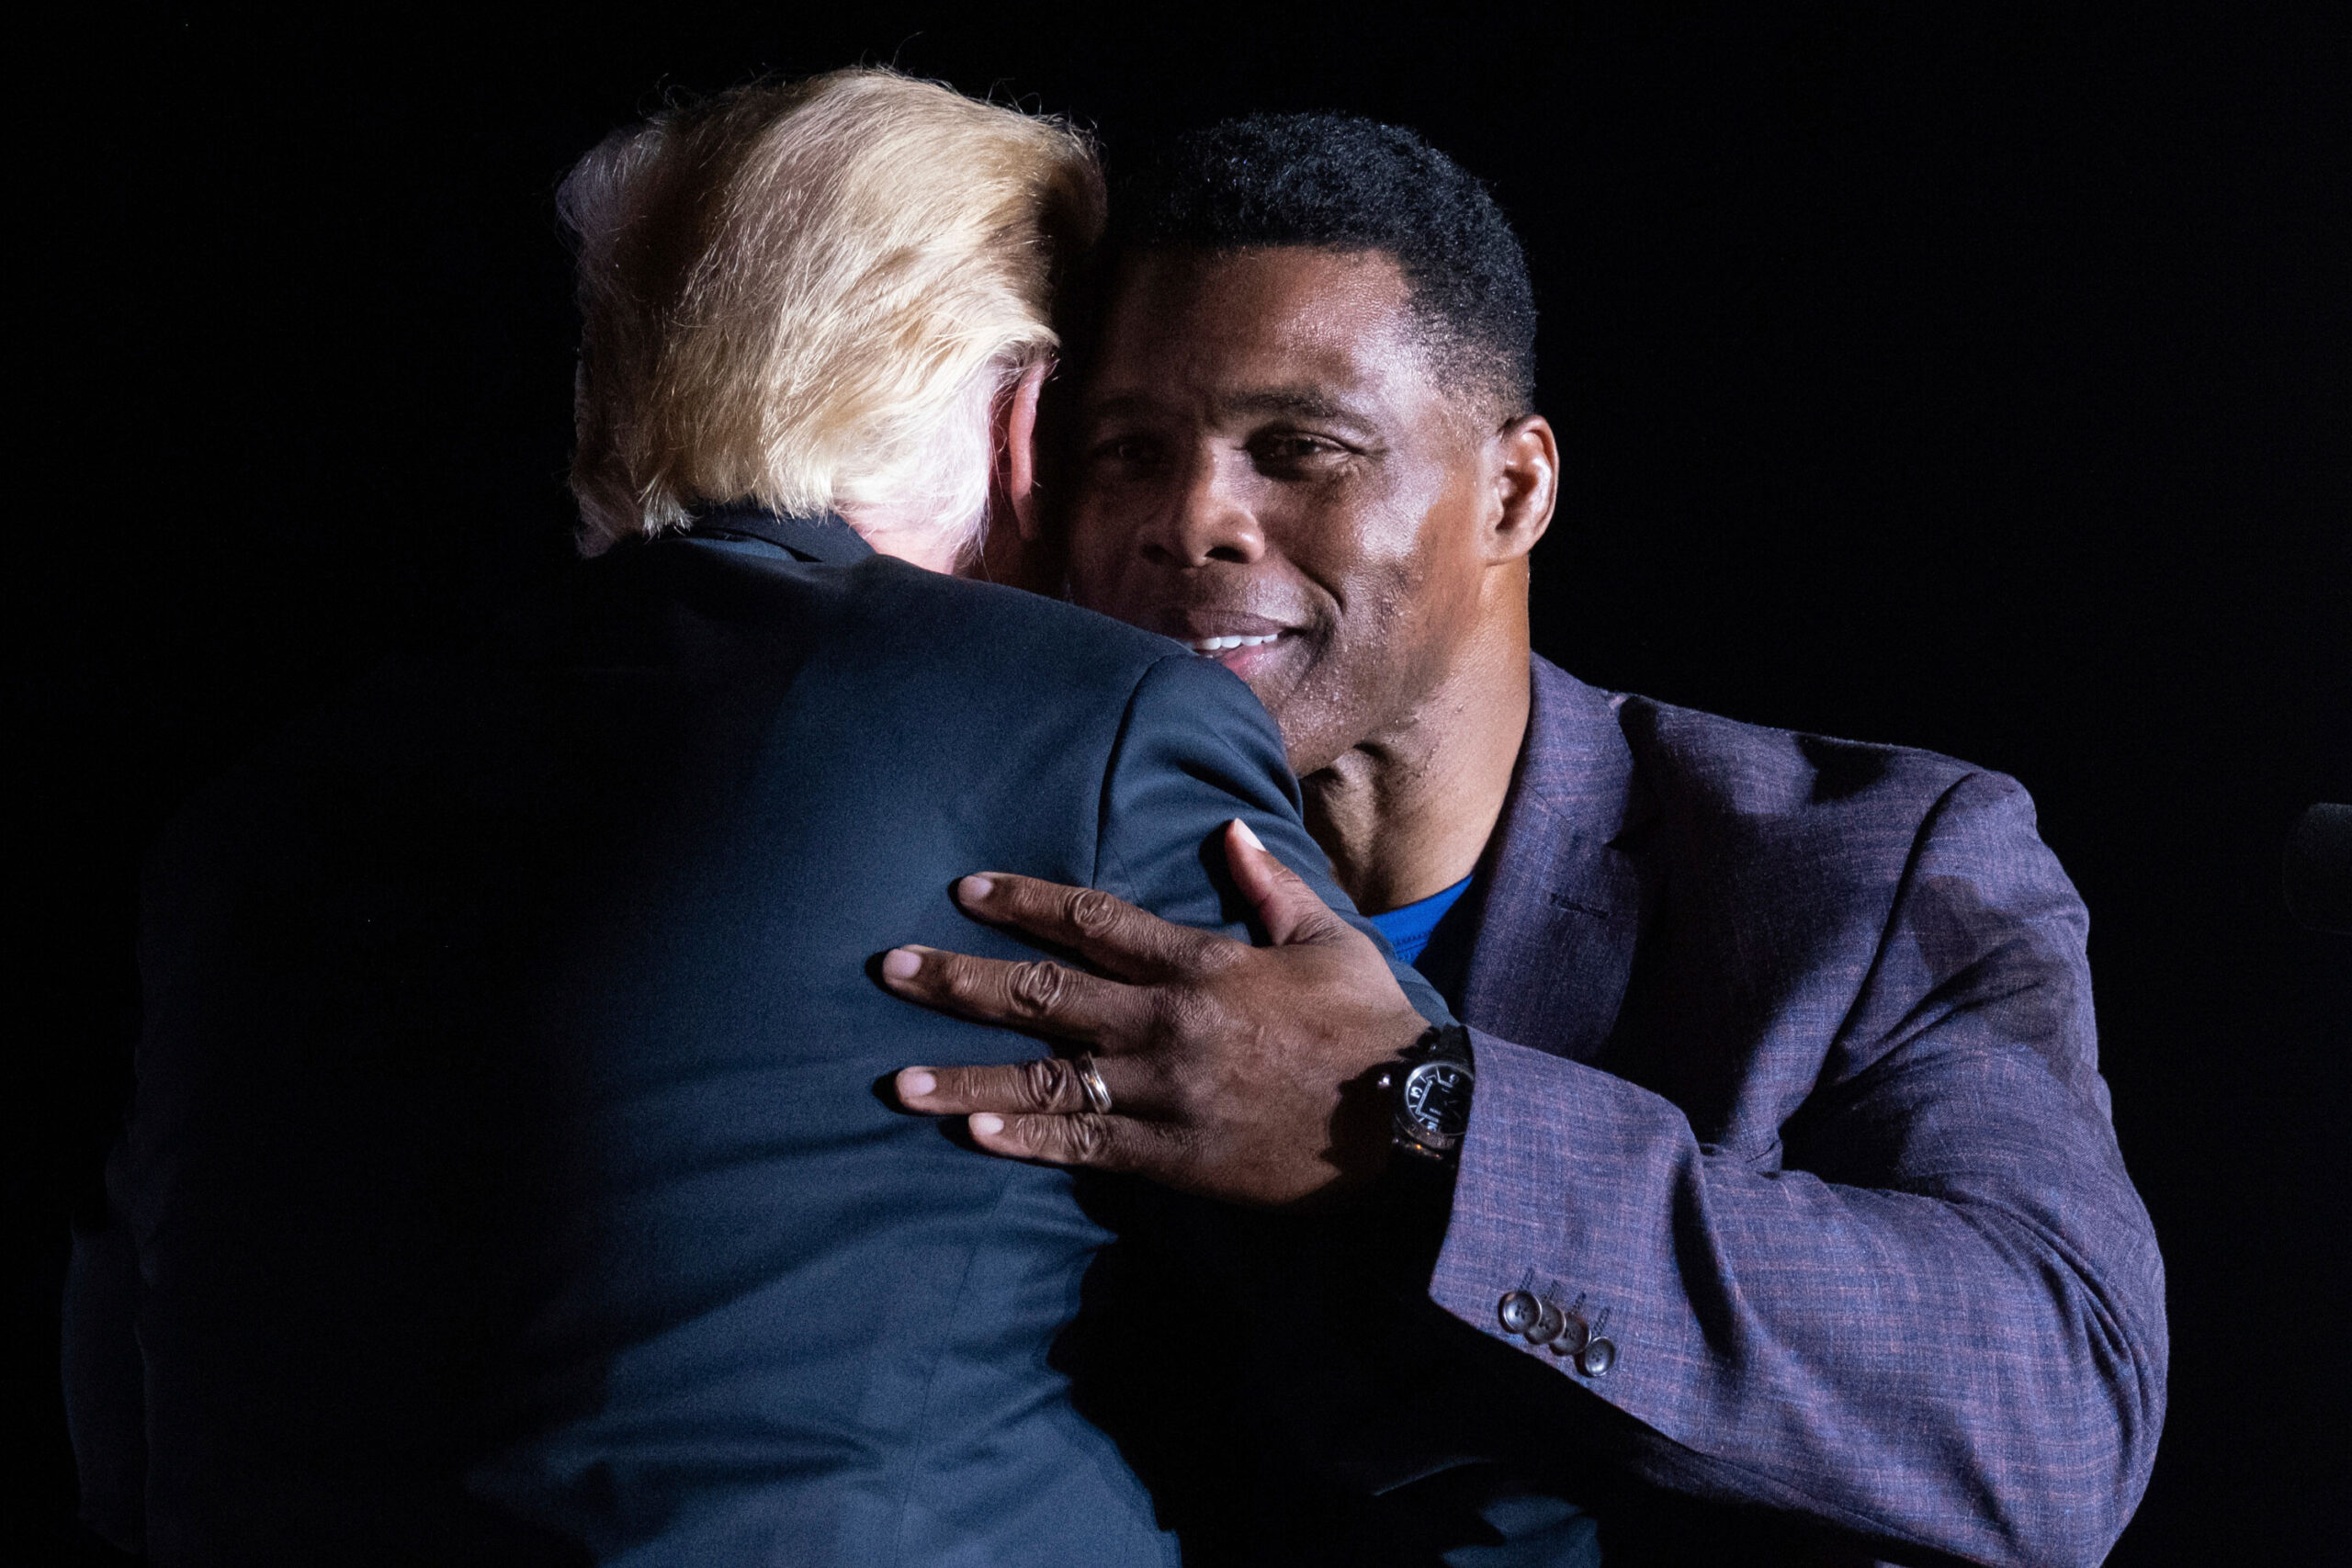 <i>Ben Gray/AP</i><br/>Former President Donald Trump hugs Georgia Senate candidate Herschel Walker during his Save America rally in Perry